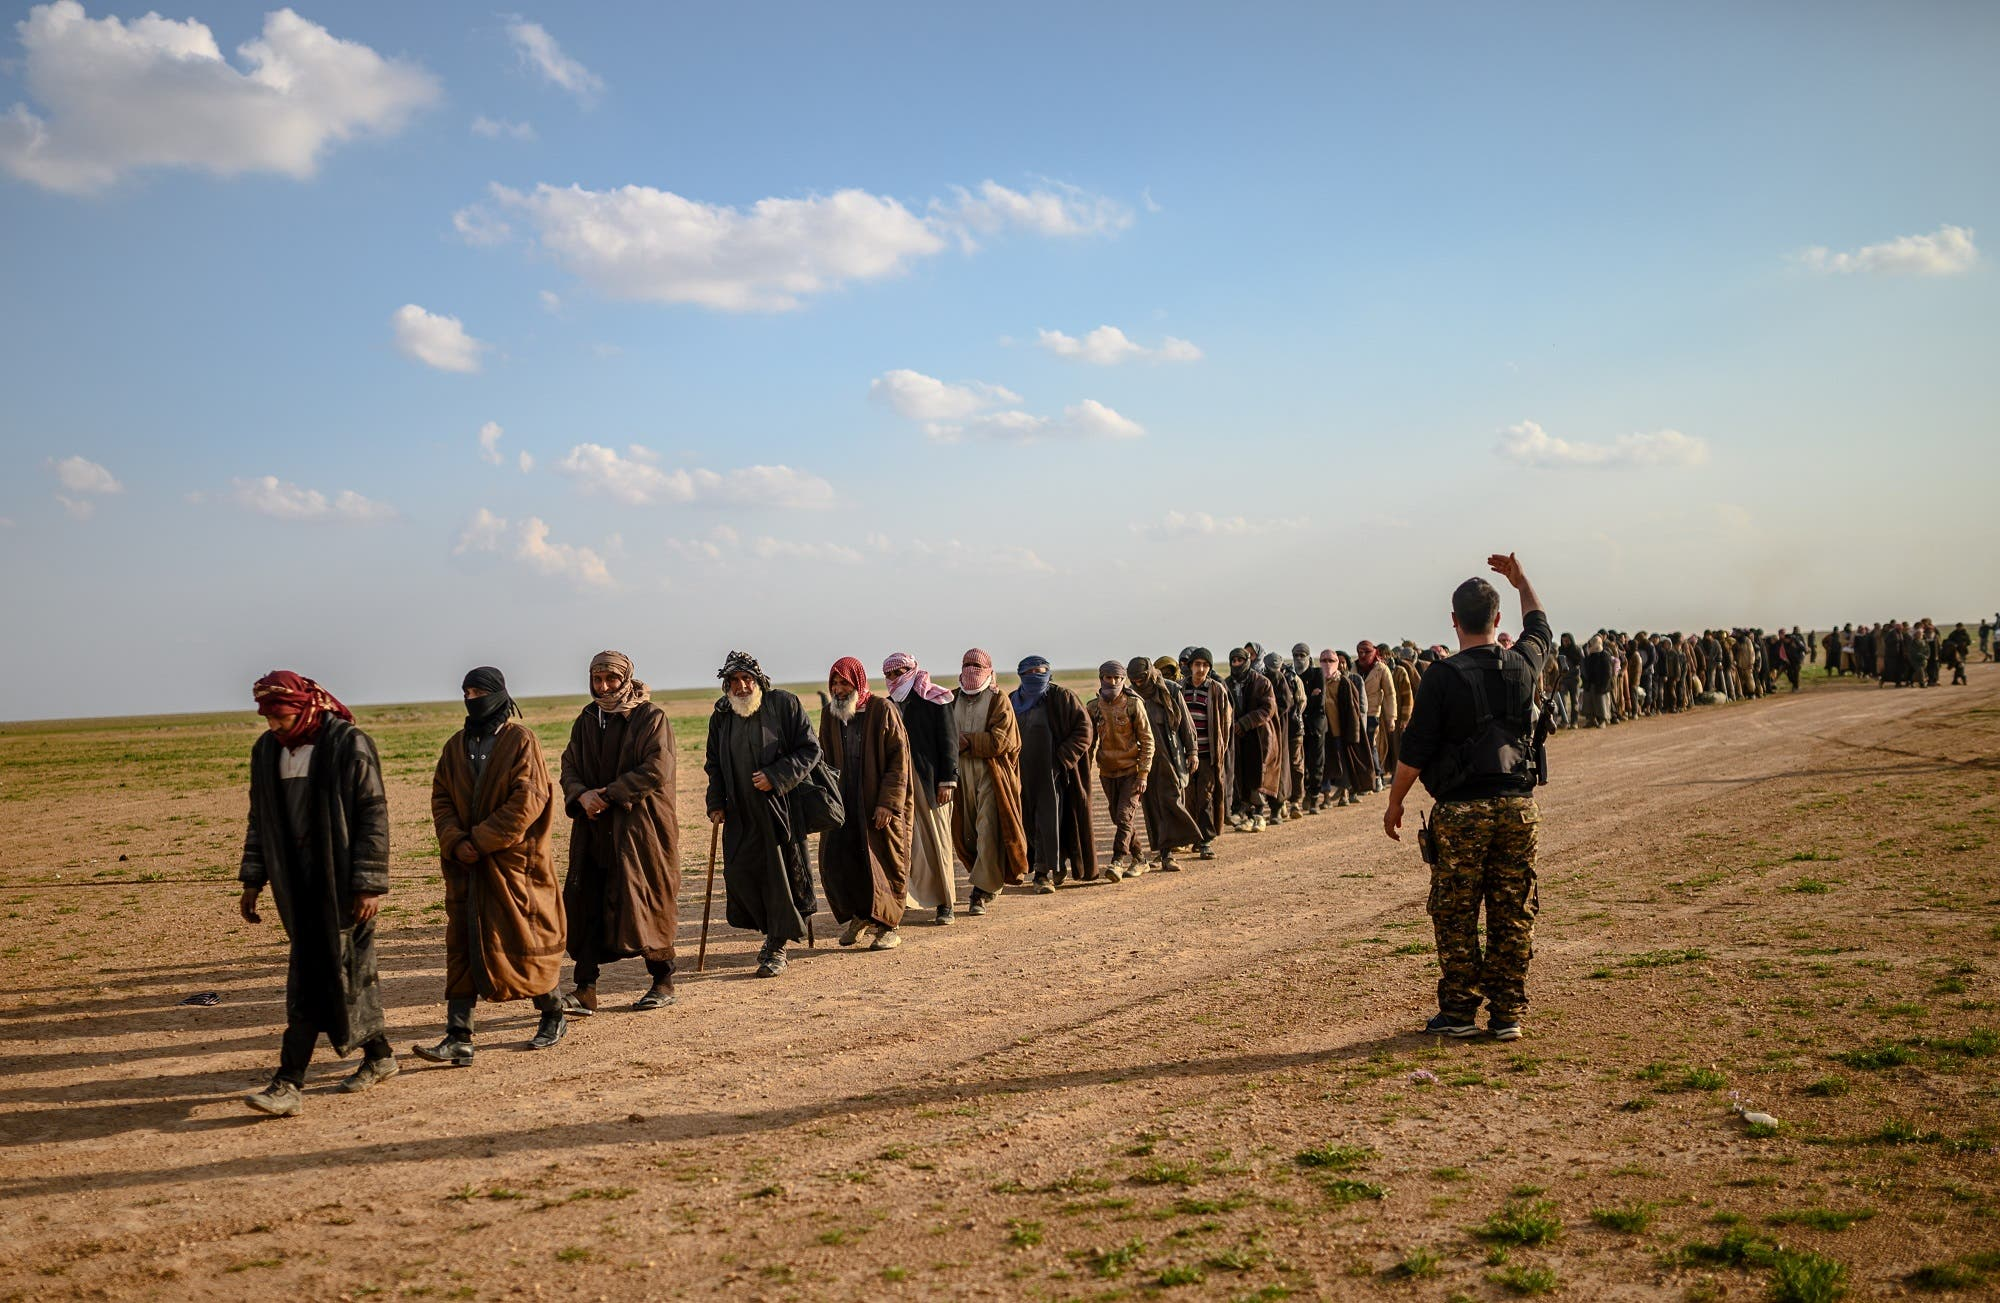 Men suspected of being ISIS fighters wait to be searched by members of the SDF after leaving the group's last holdout of Baghouz in Syria, on February 22, 2019. (AFP)